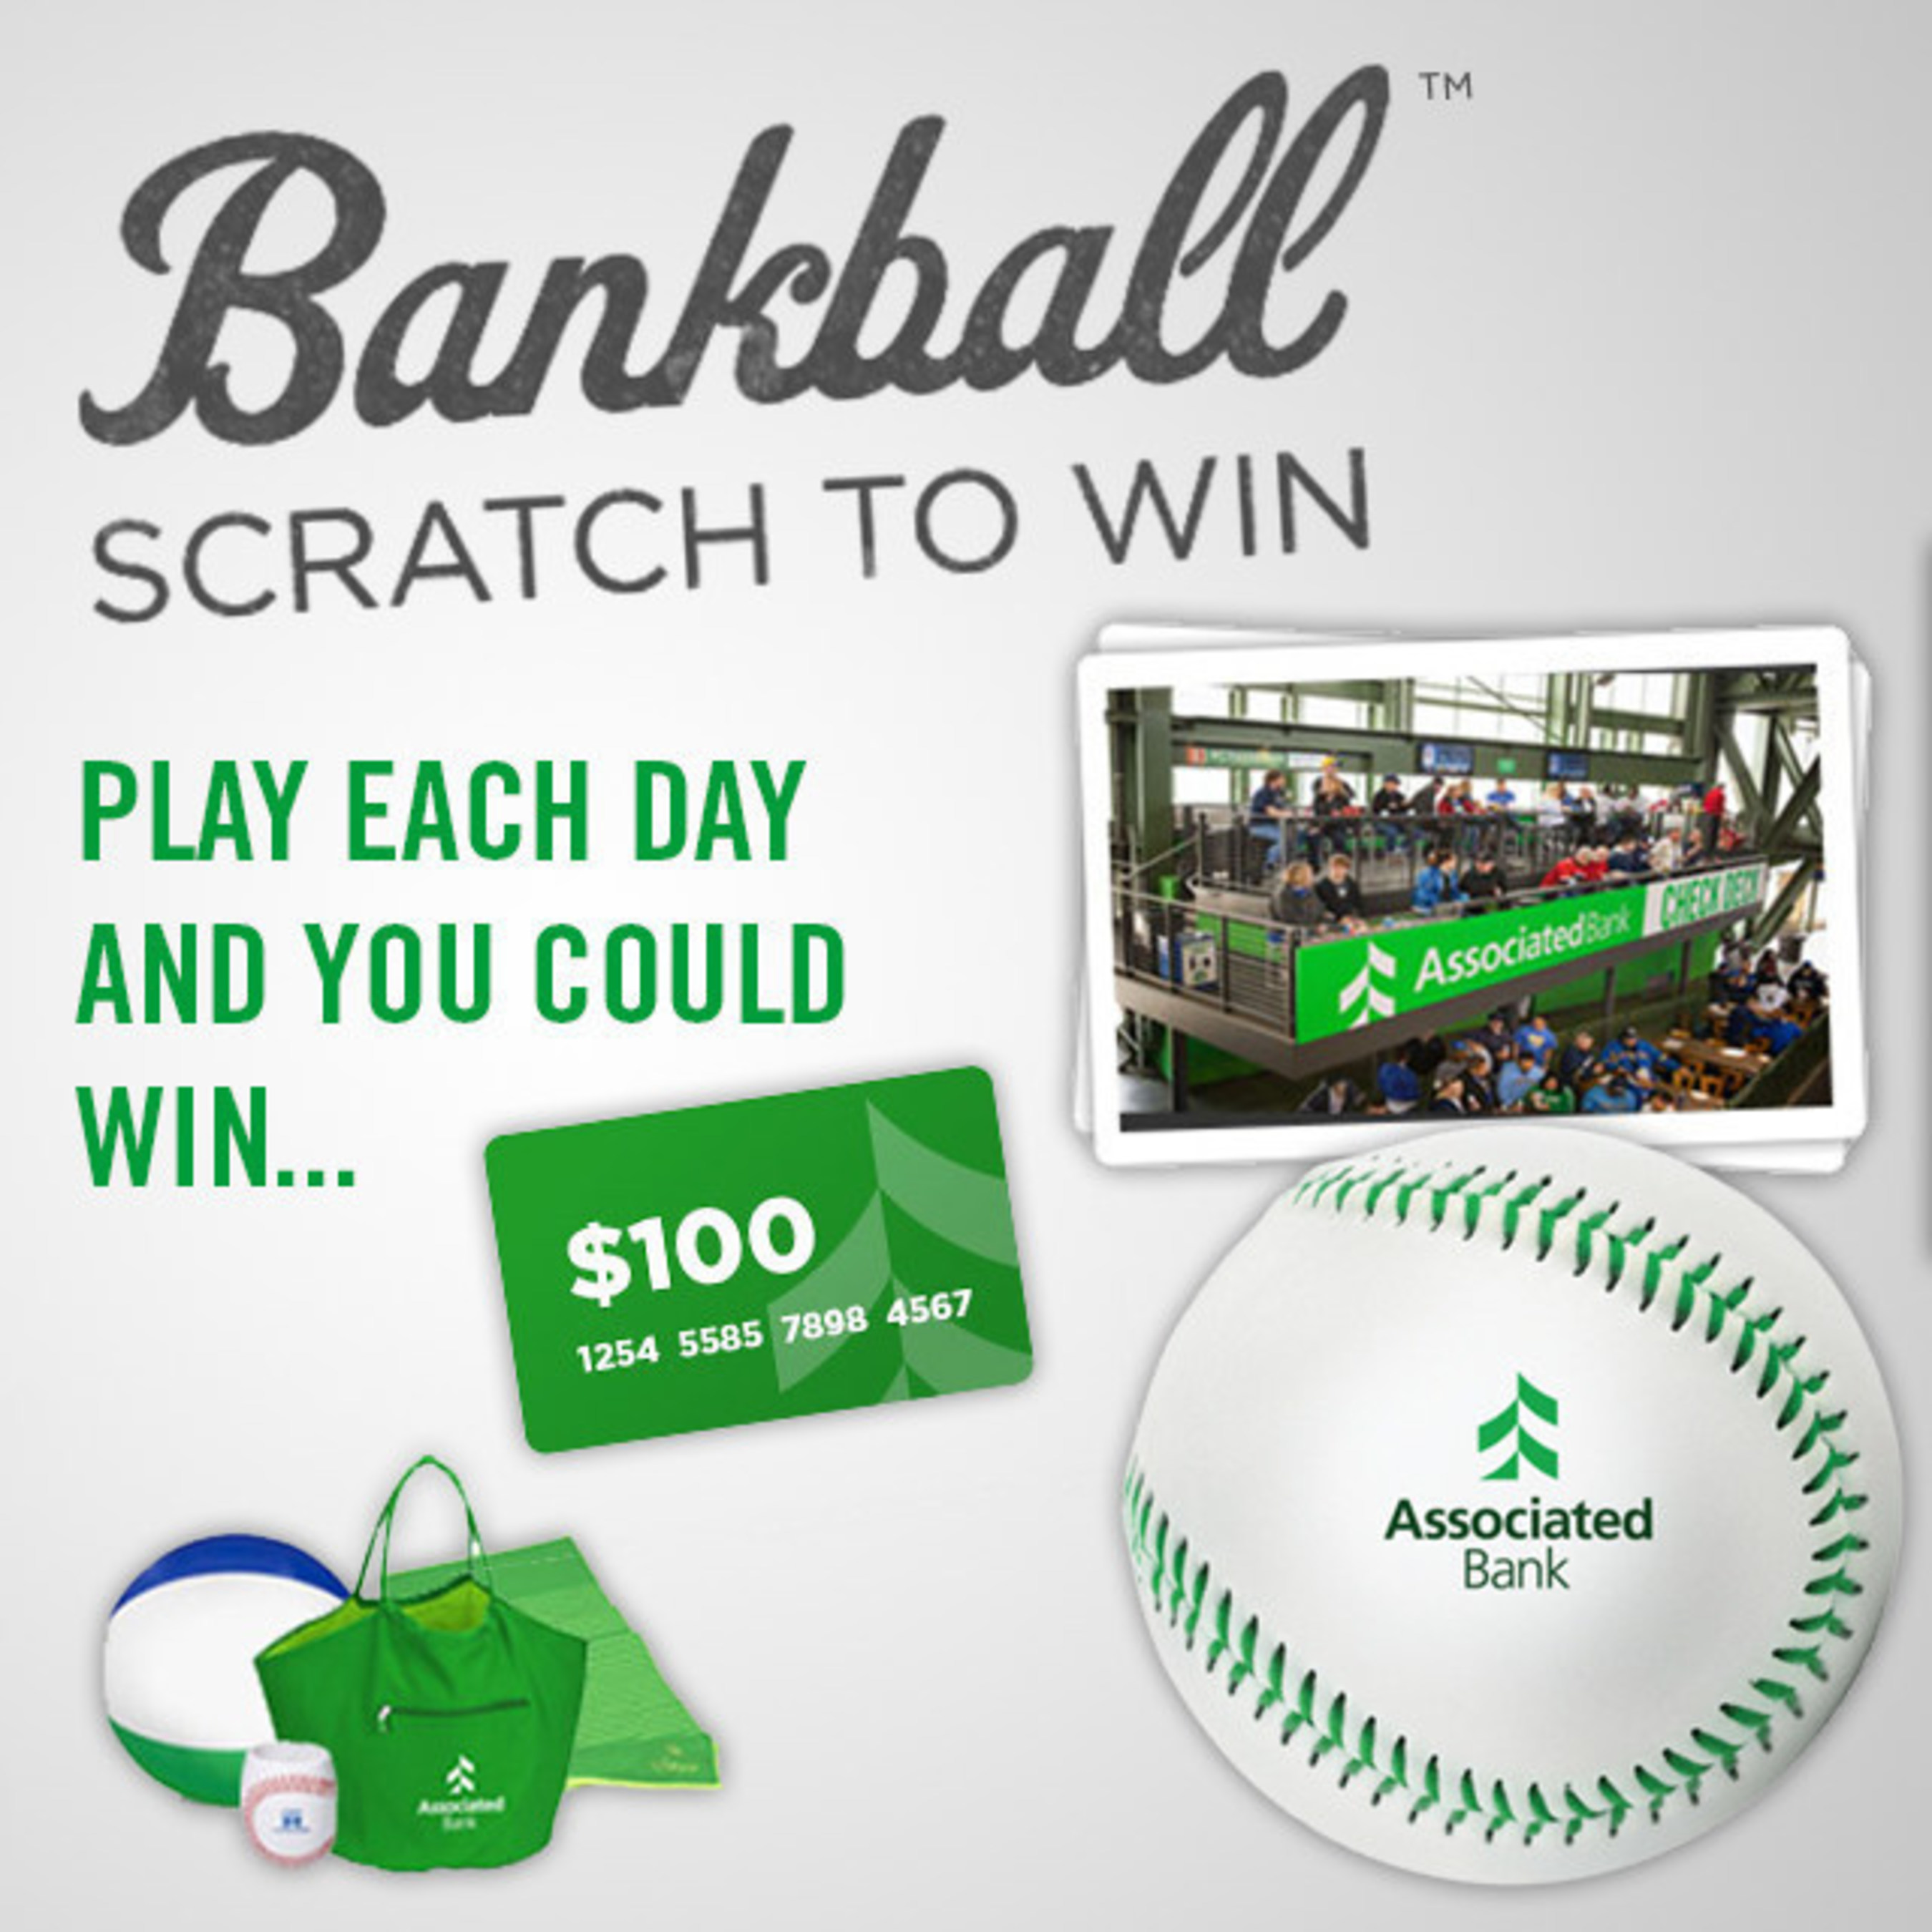 To play, visit the mobile-friendly website at www.bankball.com.